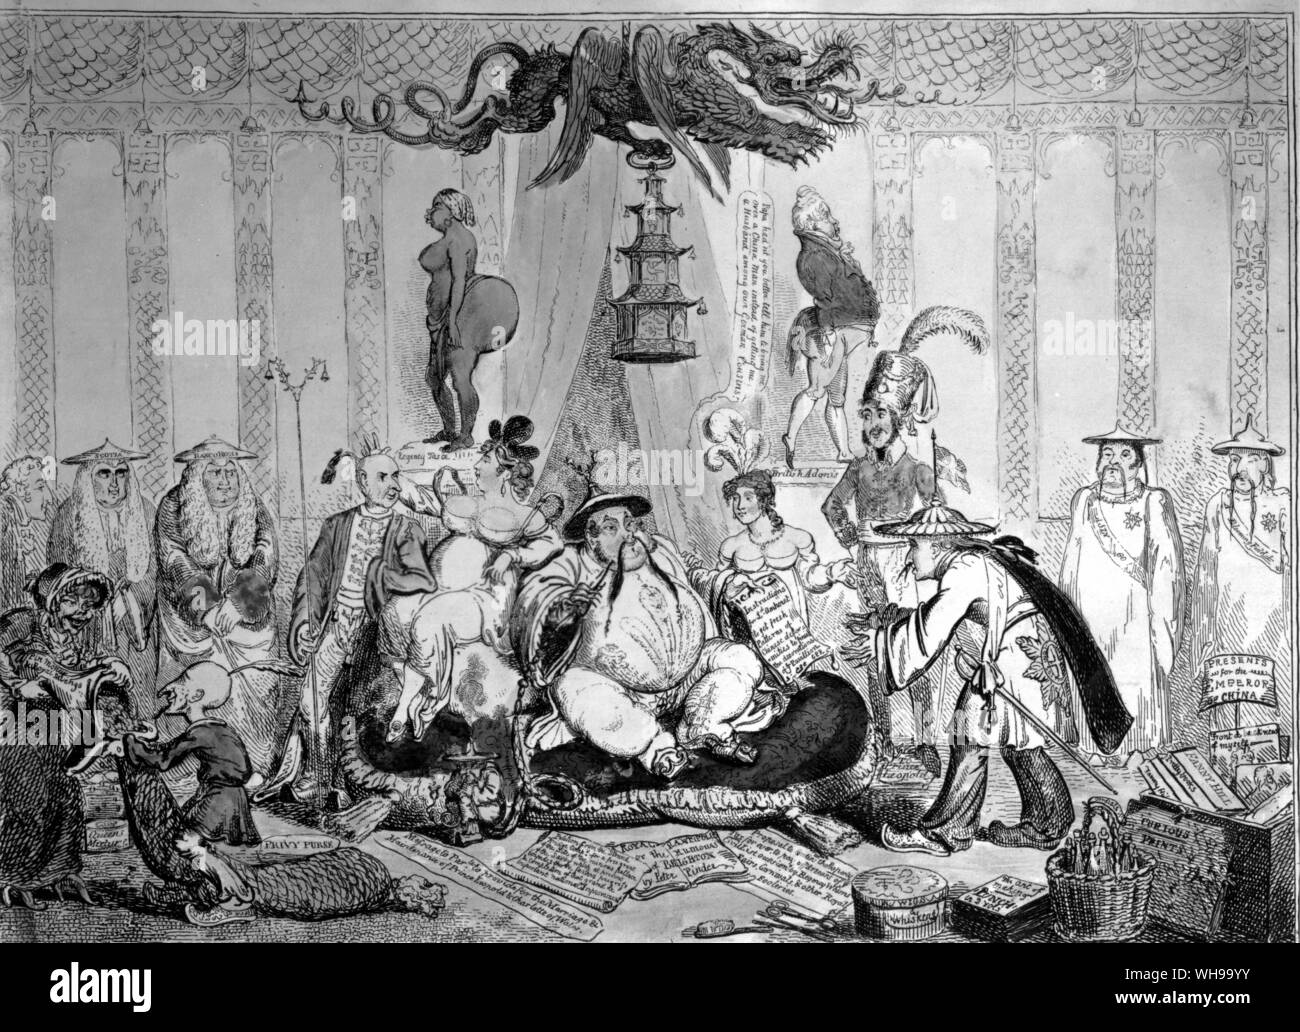 Political satire: the Prince Regent's passion for chinoiserie was cruelly lampooned by such cartoonists as Cruikshank. Stock Photo